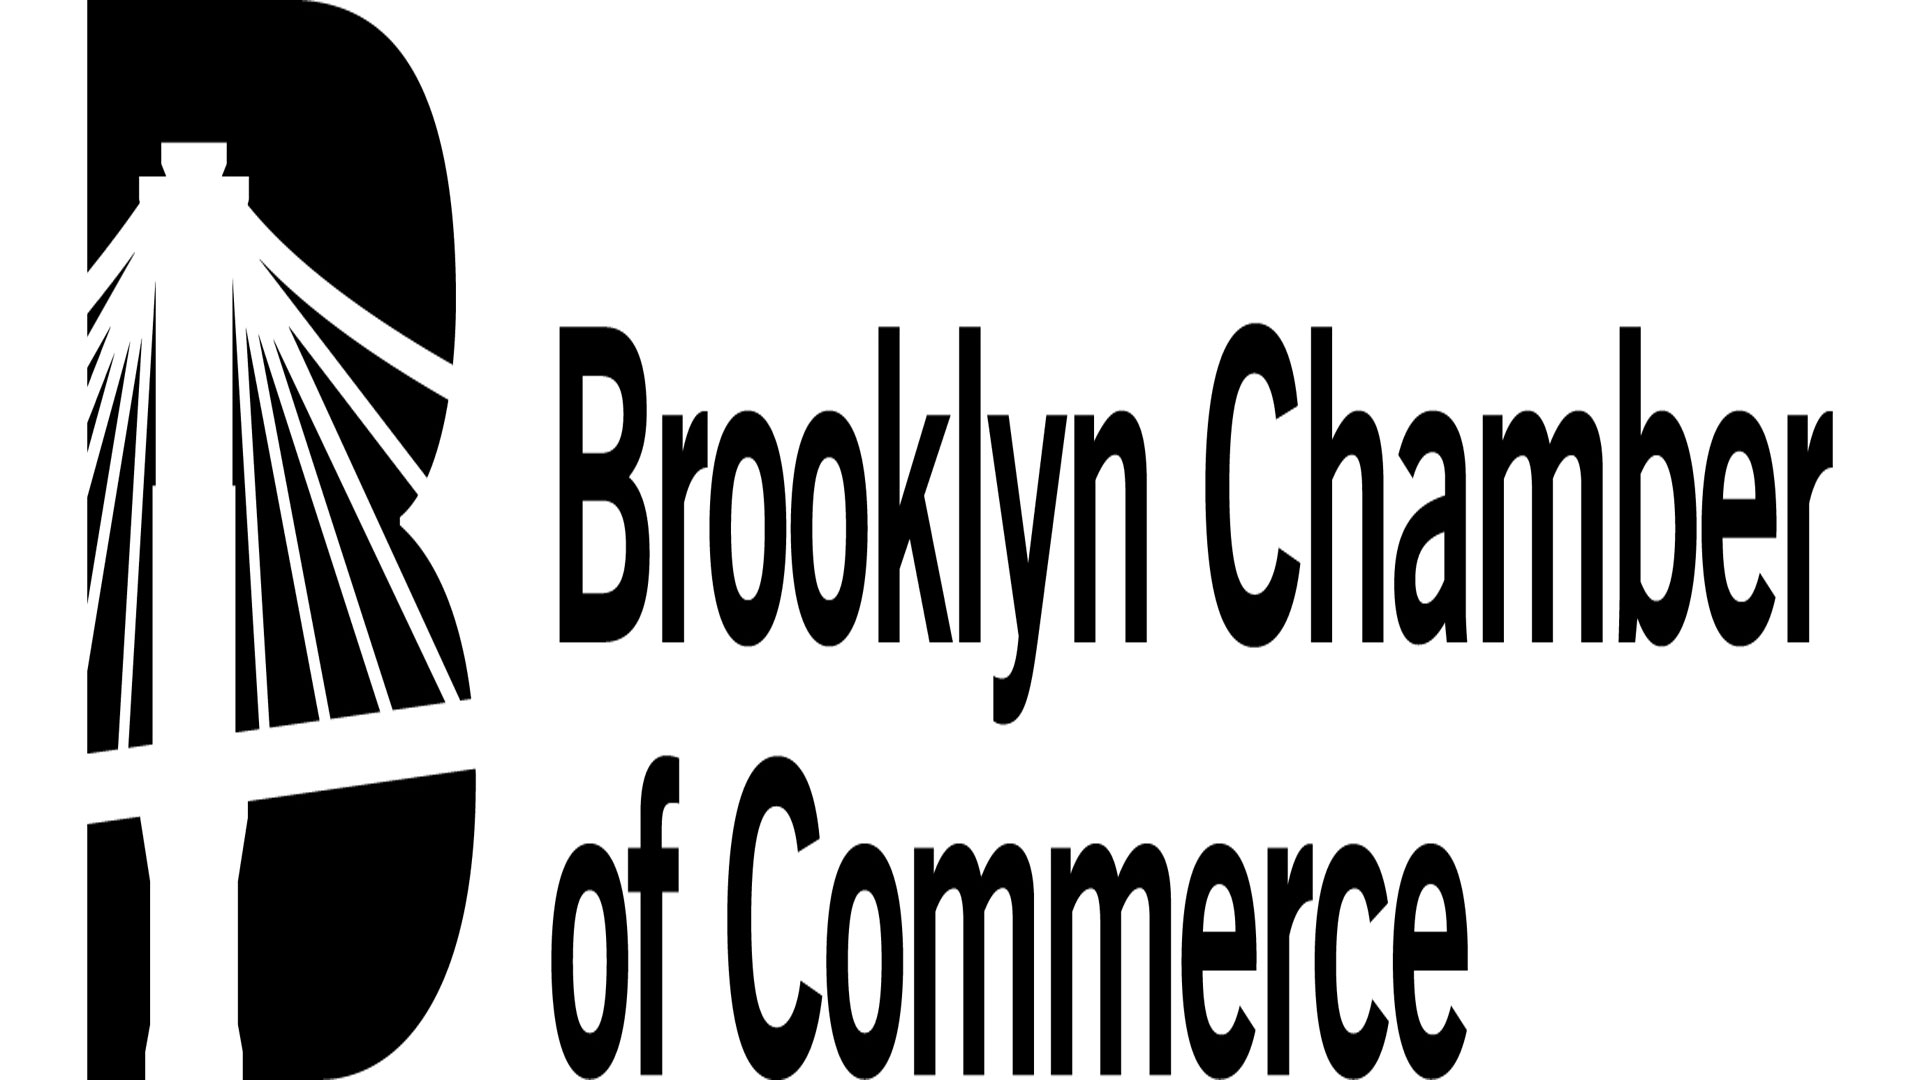 'Guiding The Future of Innovation': Google Awards Brooklyn Chamber $125,000 Grant to Give Businesses the Online Tools to Succeed